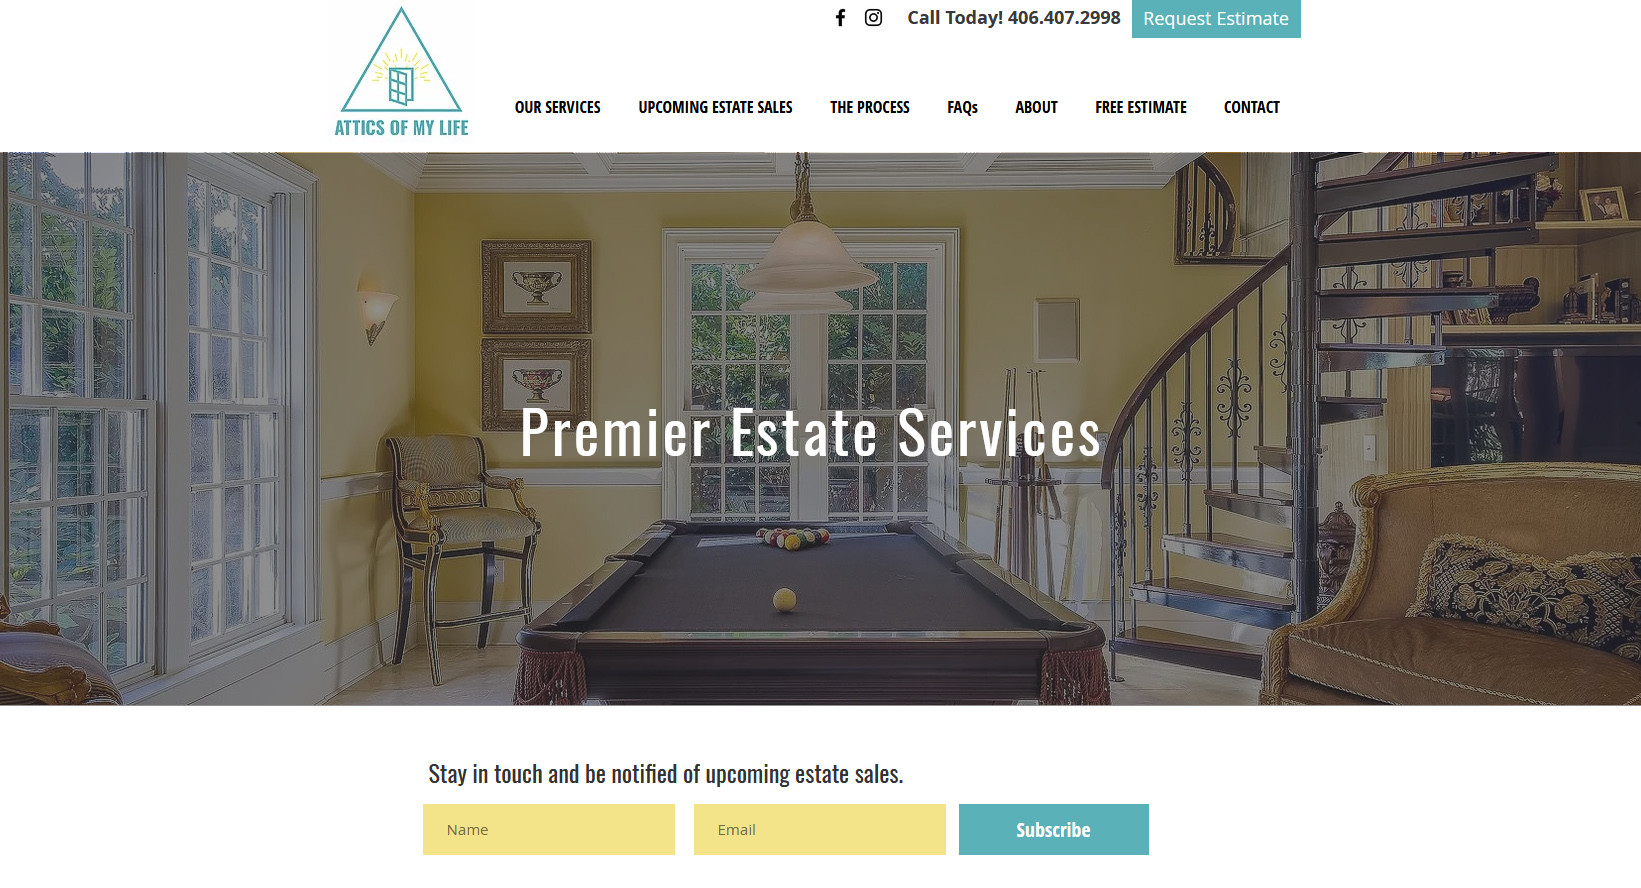 Attics of My Life estate services websit